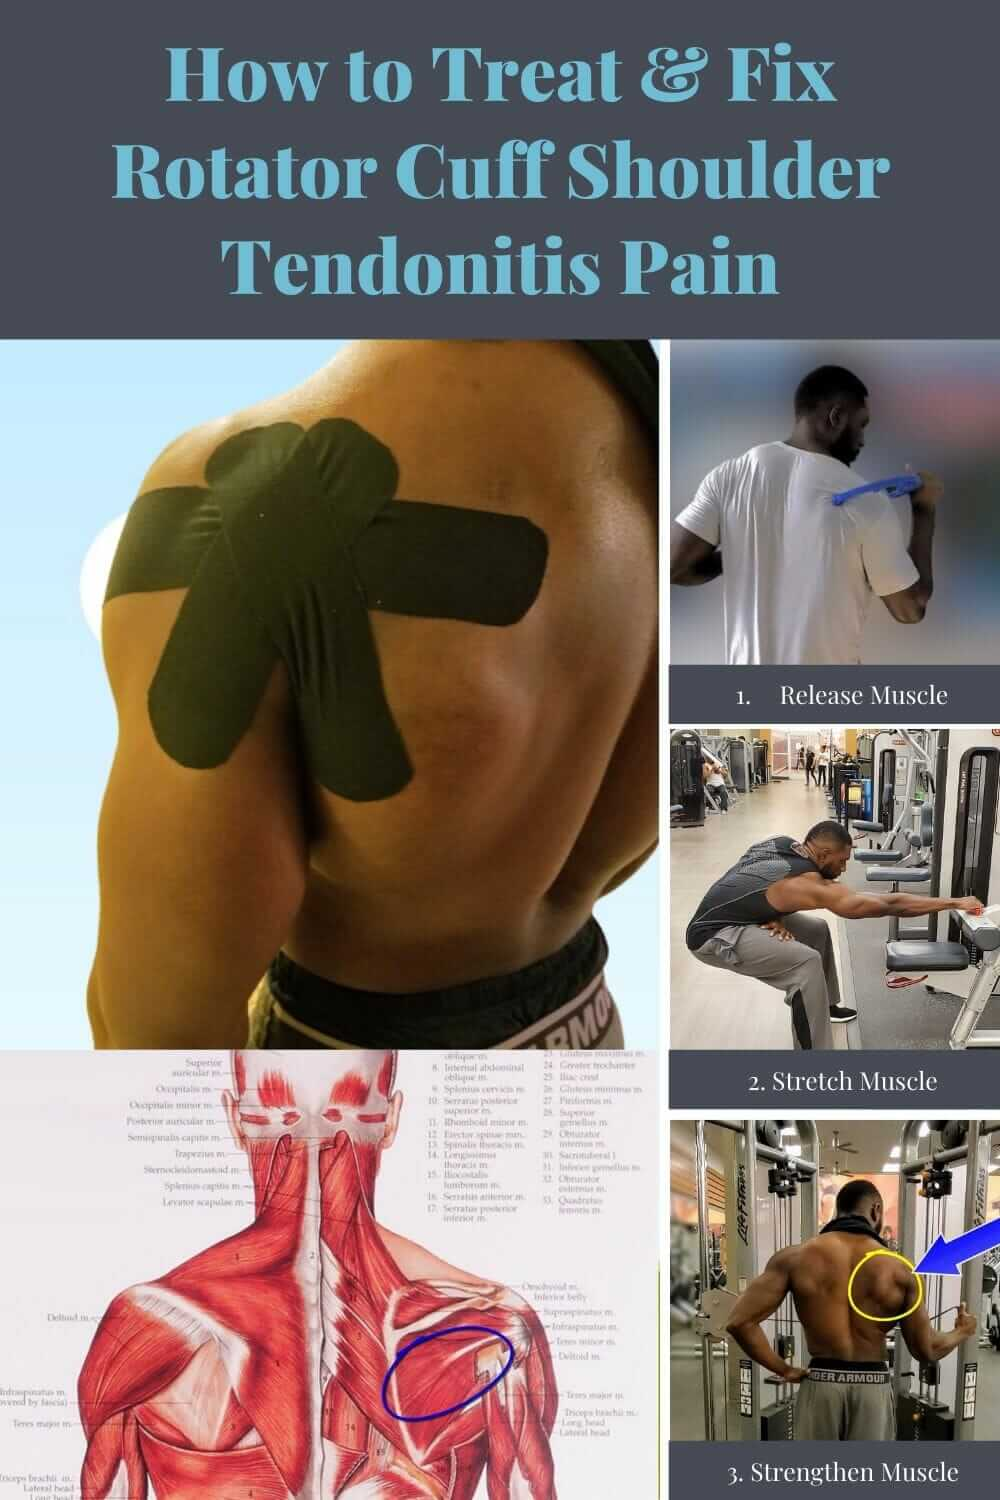 How to treat shoulder rotator cuff tendonitis pain